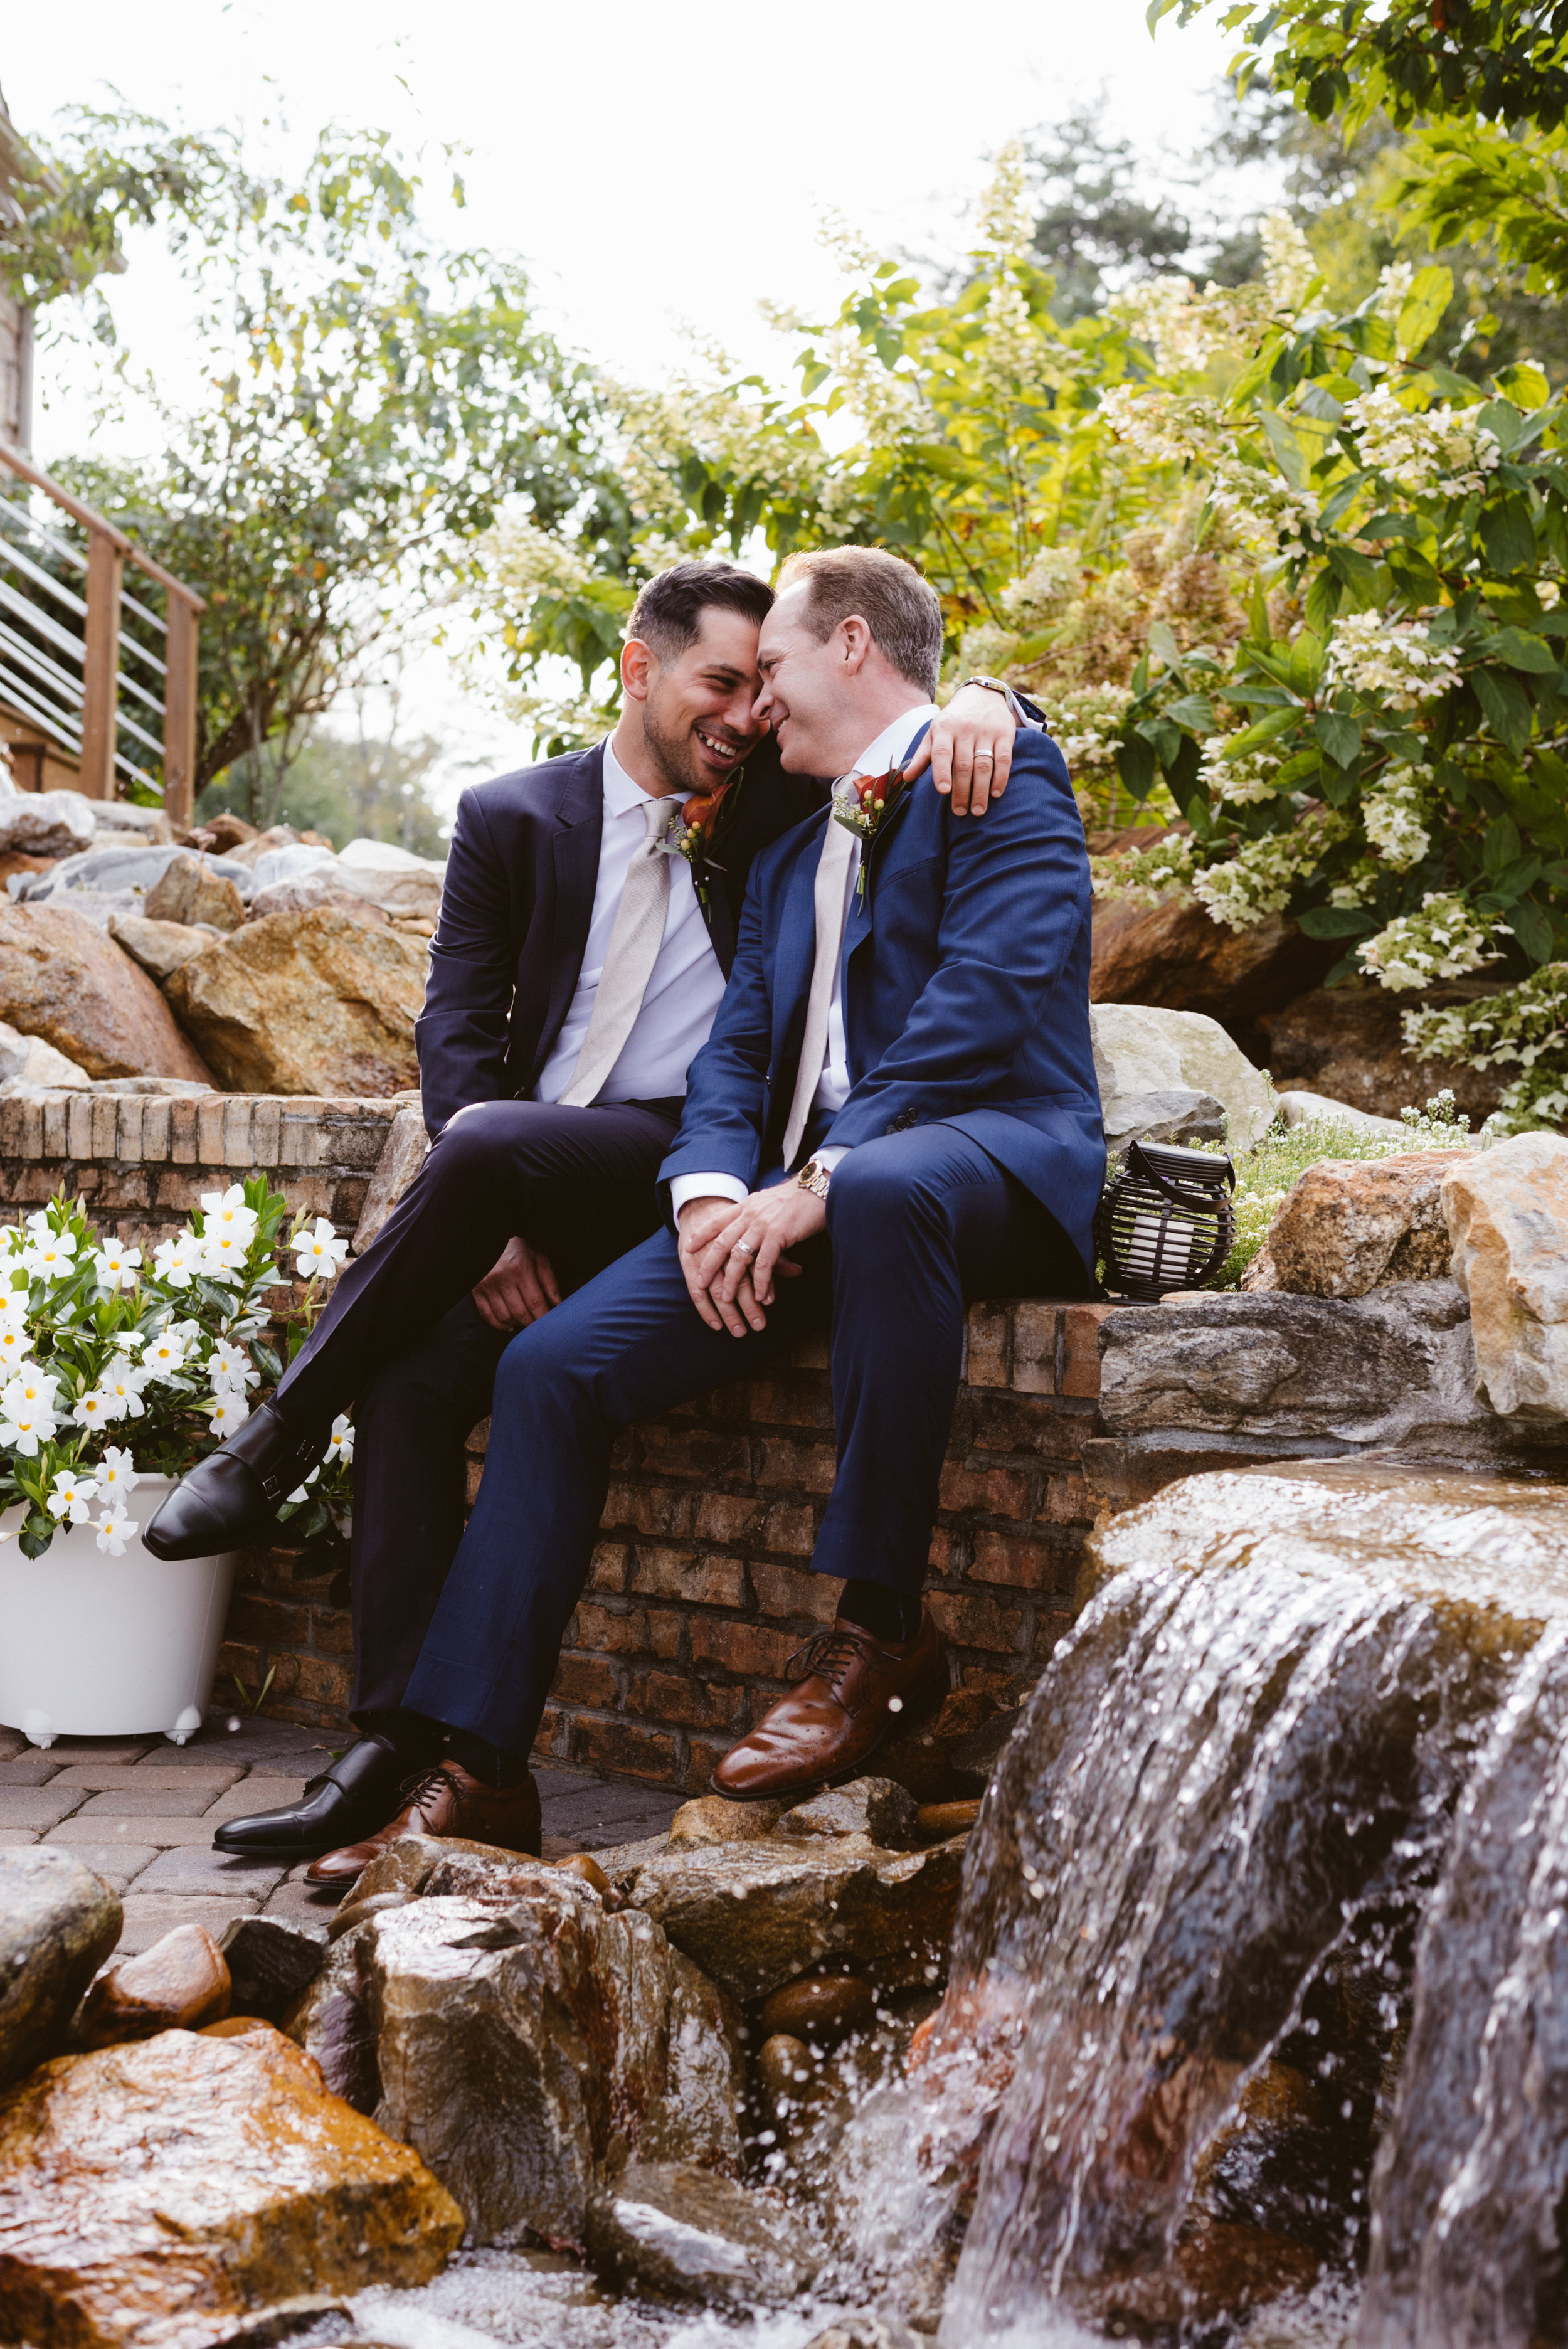 GROOM AND GROOM toasting DURING THEIR BEAUTIFUL ELOPEMENT IN THE BLUE RIDGE MOUNTAINS OF ASHEVILLE, NORTH CAROLINA. music and sound provided by LGBTQ supporter and Wedding Musician & DJ in Asheville.